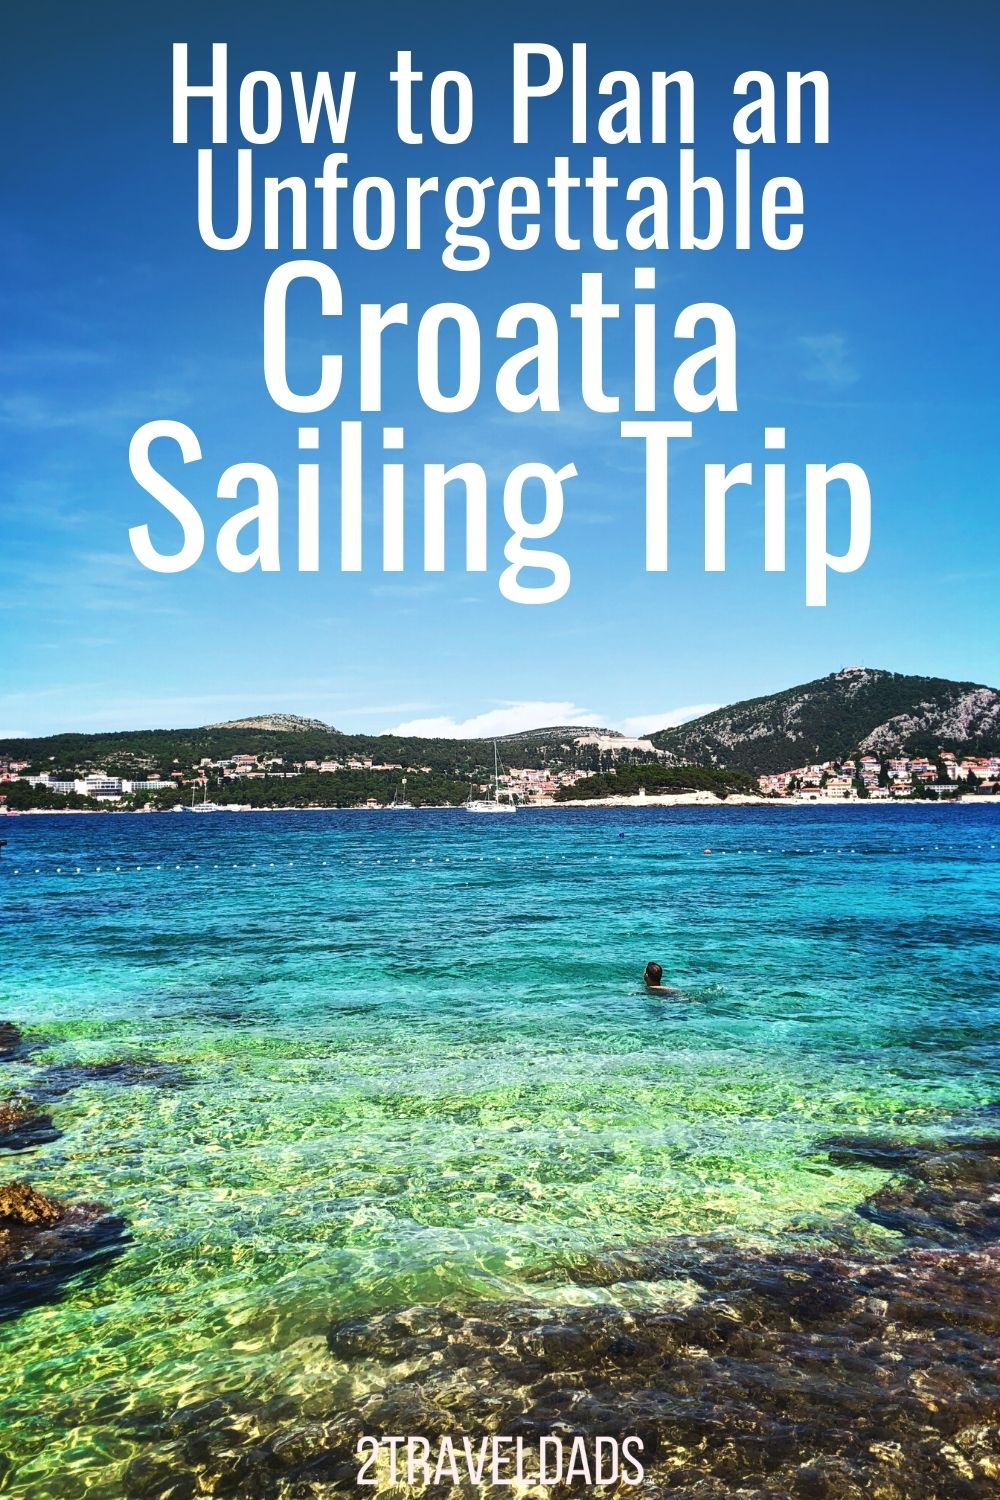 Sailing the coast of Croatia is unforgettable, with medieval towns, pristine beaches (and nude ones!) and incredible Croatian food. See how to plan a sailing trip in Croatia including packing lists and finding flights.